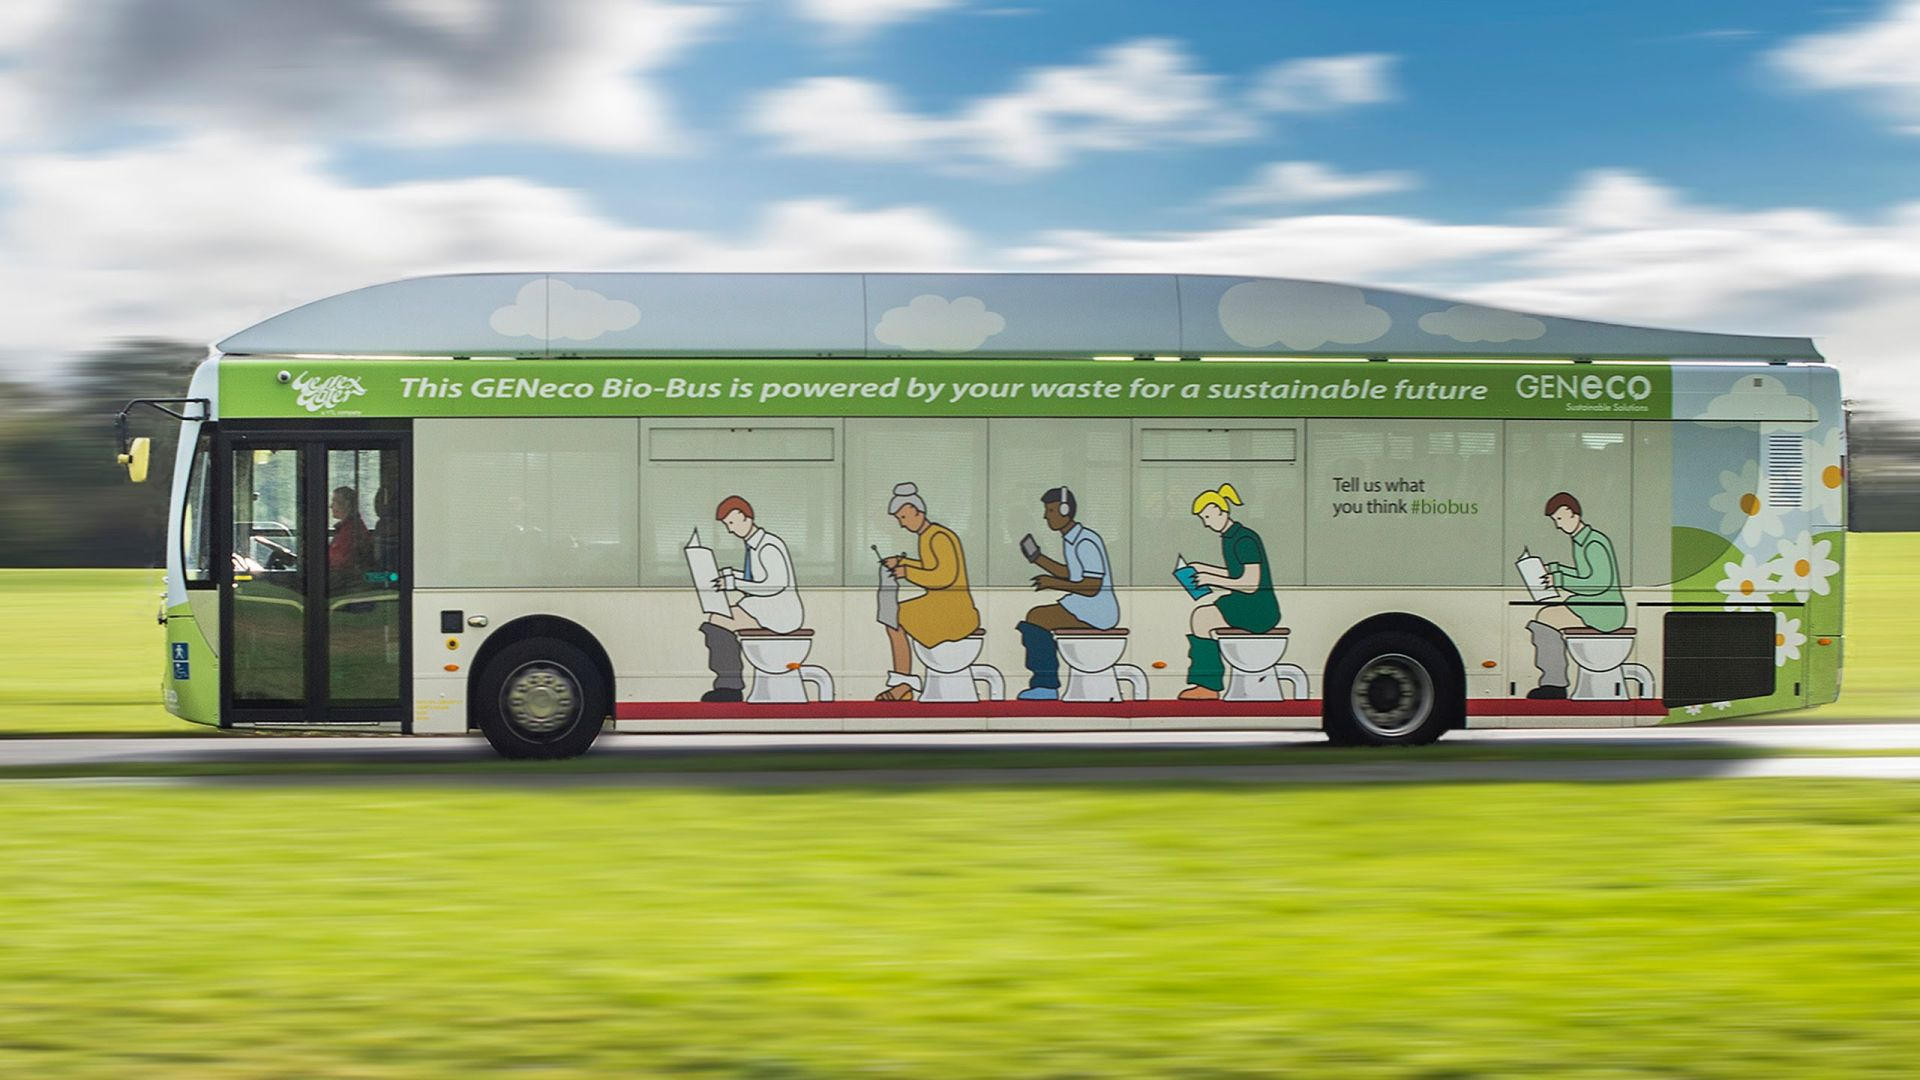 The 'Bio-Bus' is a bus service in the UK that is powered by poop.